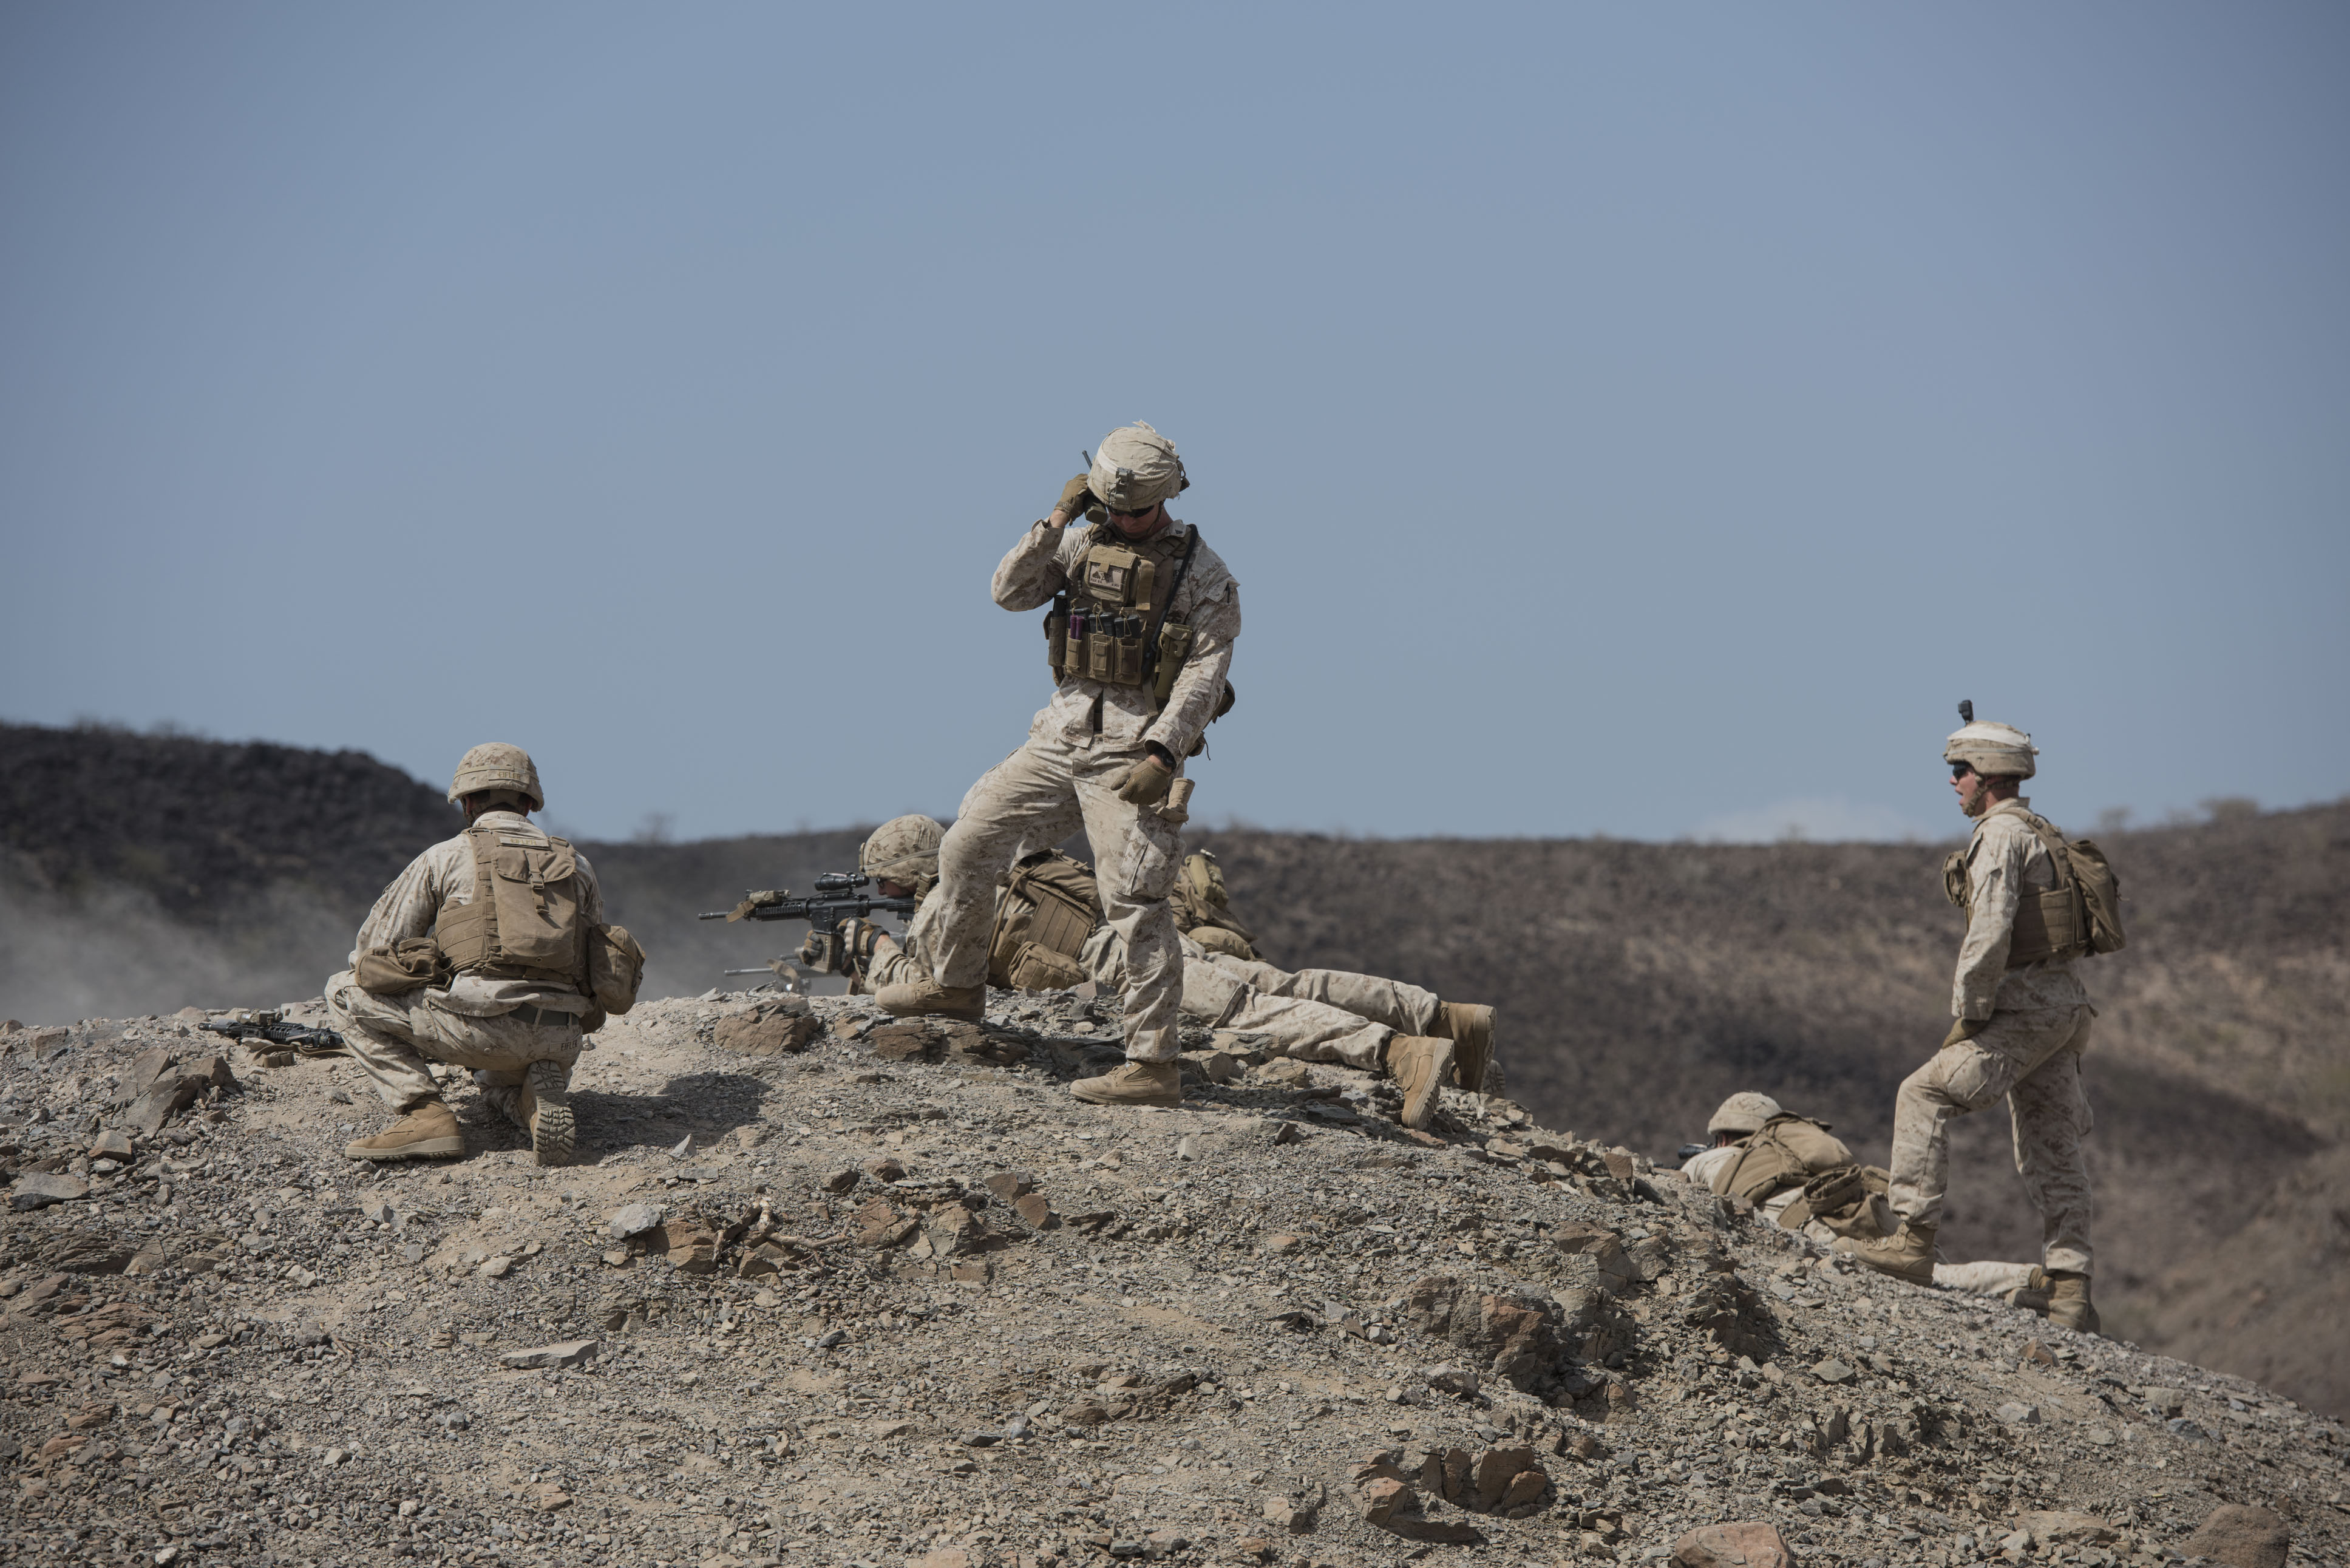 U.S. Marines with the 15th Marine Expeditionary Unit take aim at a target during Alligator Dagger at Arta Range, Djibouti, Dec. 17, 2017. Alligator Dagger, led by Naval Amphibious Force, Task Force 51/5th Marine Expeditionary Brigade, is a dedicated, bilateral combat rehearsal that combines U.S. and French forces to practice, rehearse and exercise integrated capabilities available to U.S. Central Command both afloat and ashore. (U.S. Air National Guard photo by Staff Sgt. Allyson L. Manners)